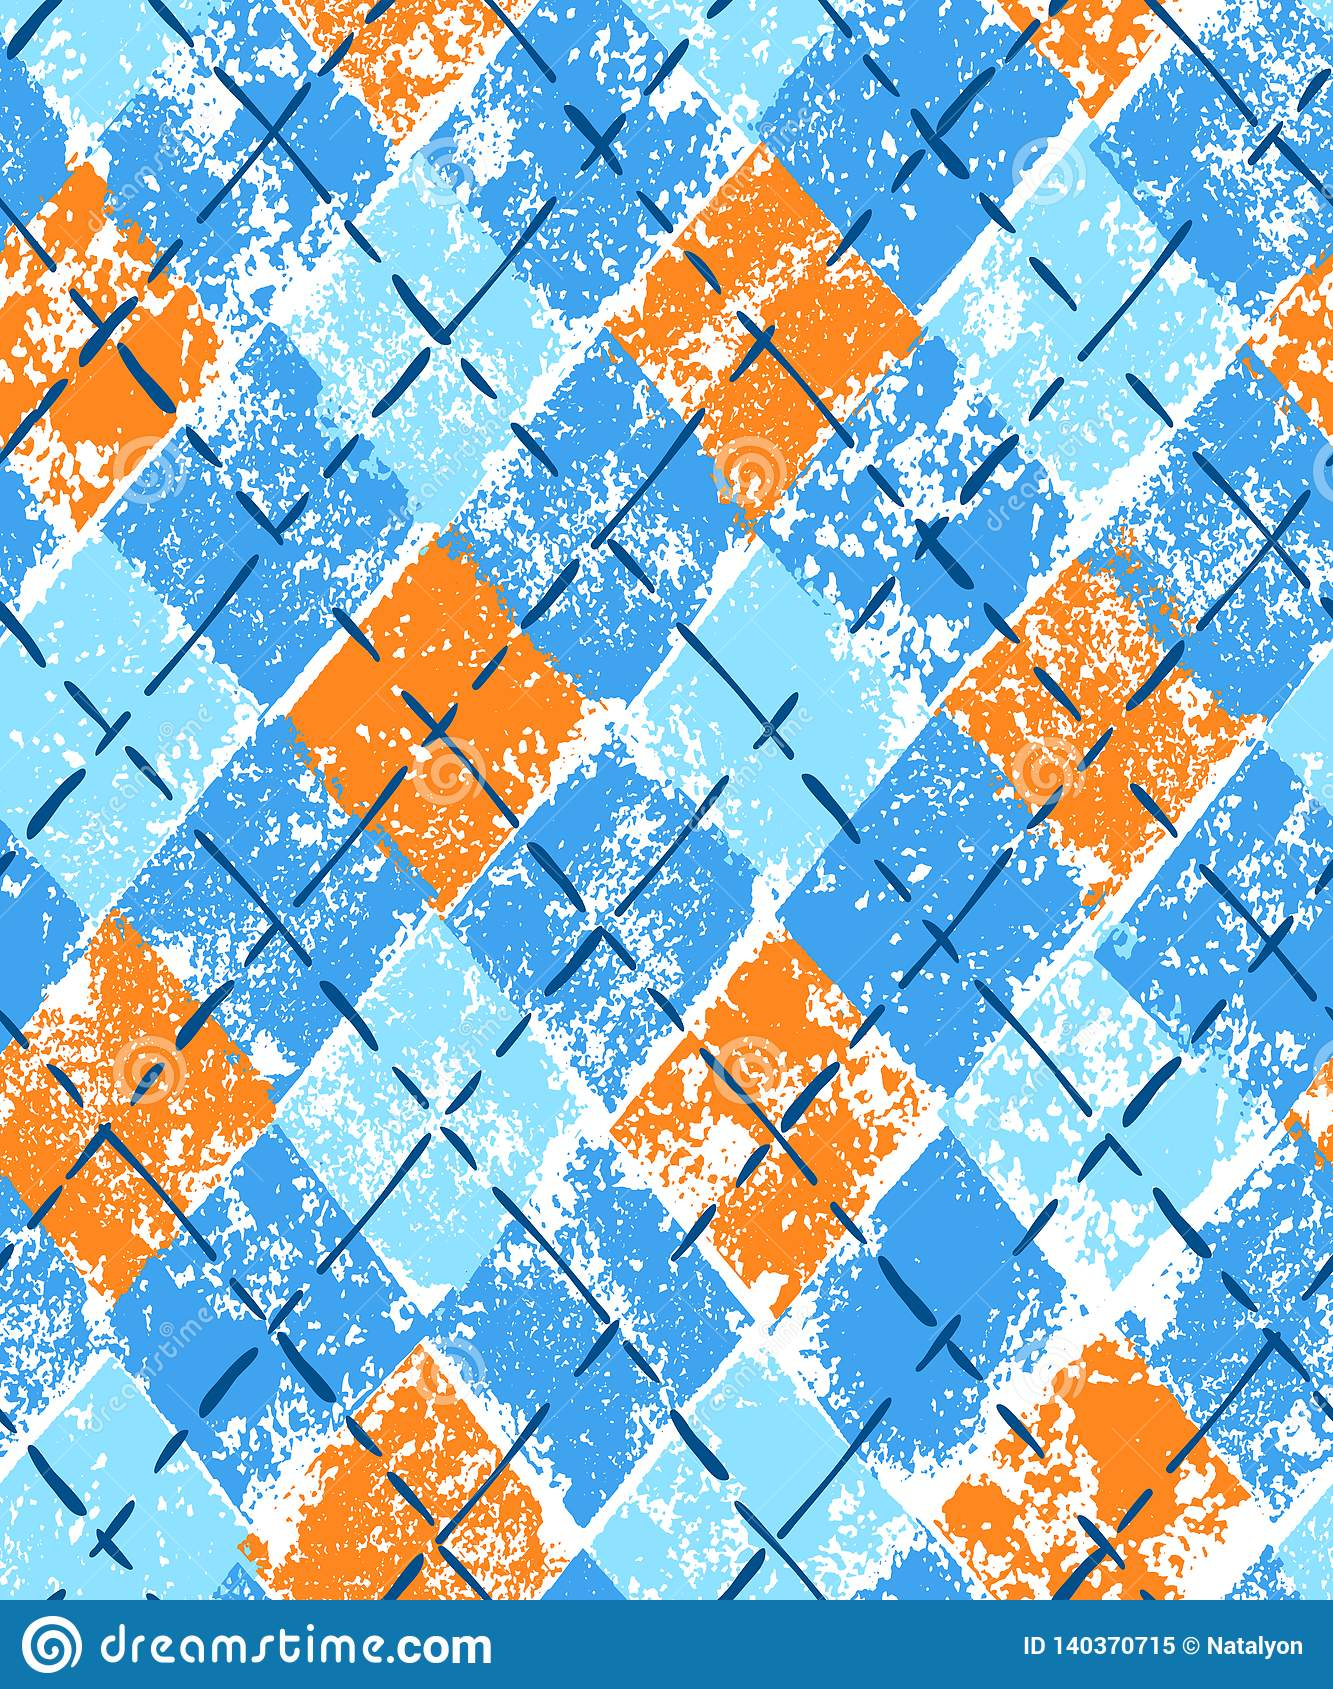 Colorful blue and orange grunge print argyle geometric checkered seamless pattern, vector